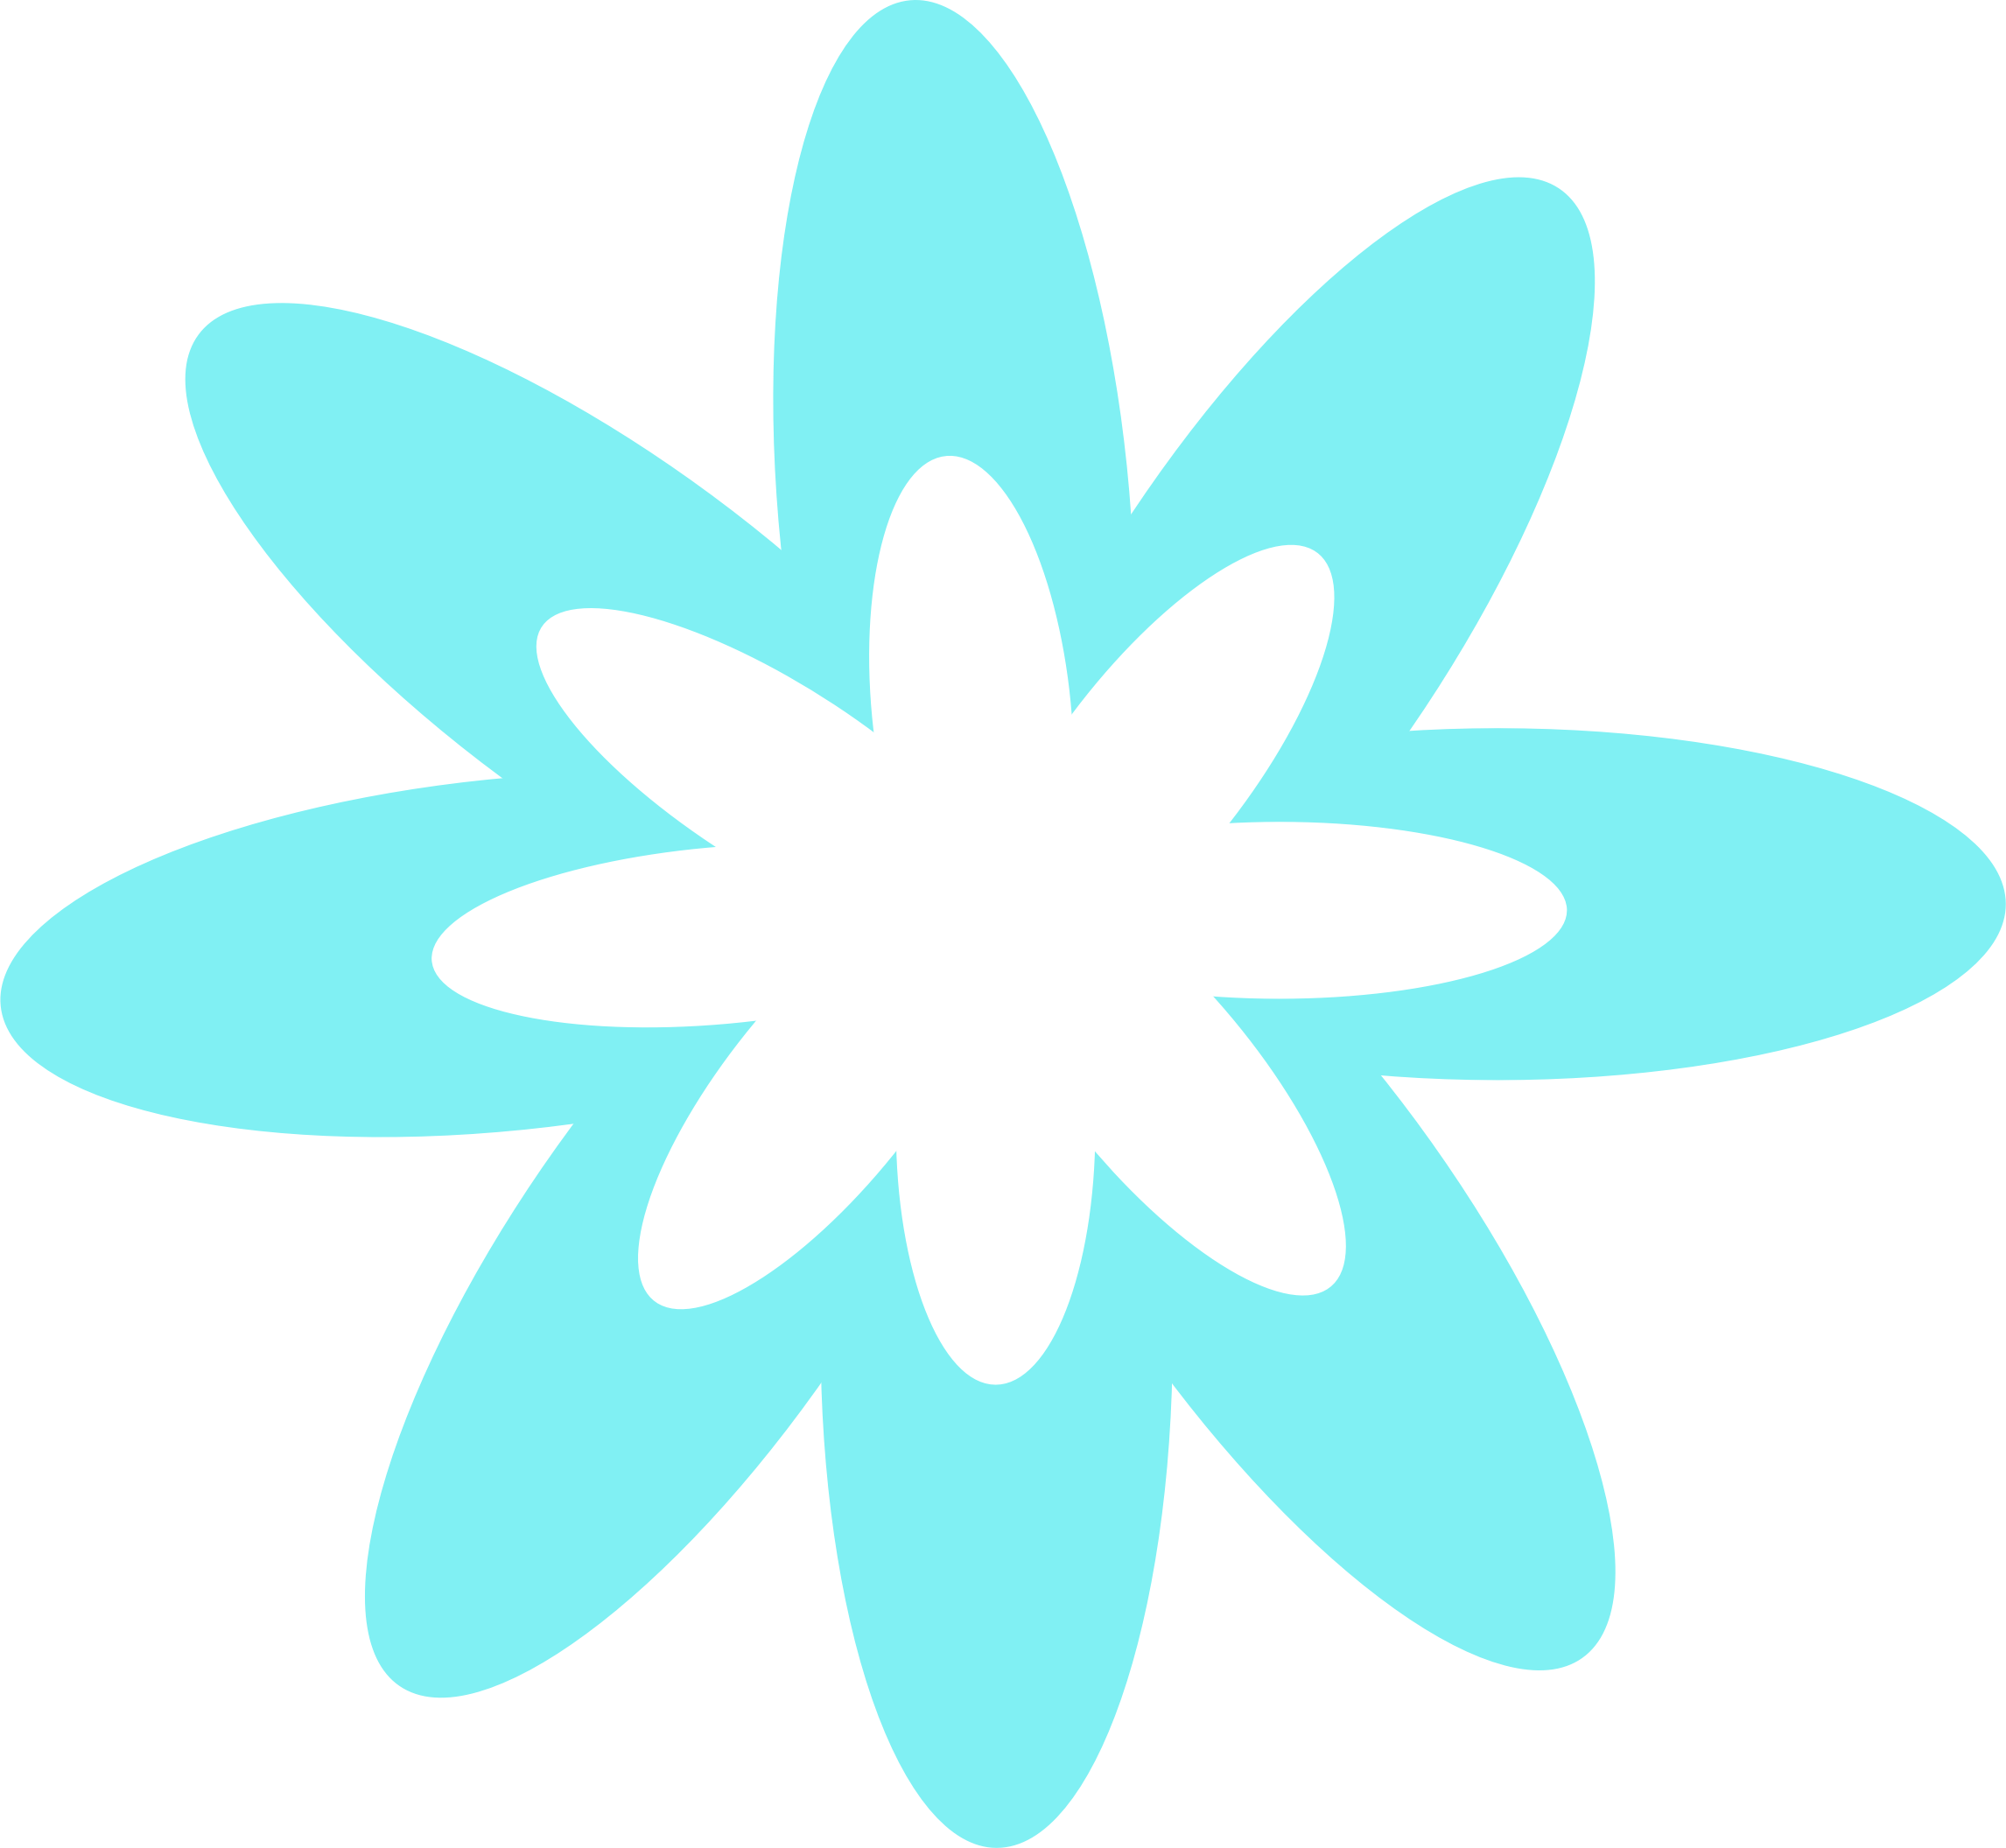 Blue burst icons png. Flower icon clipart